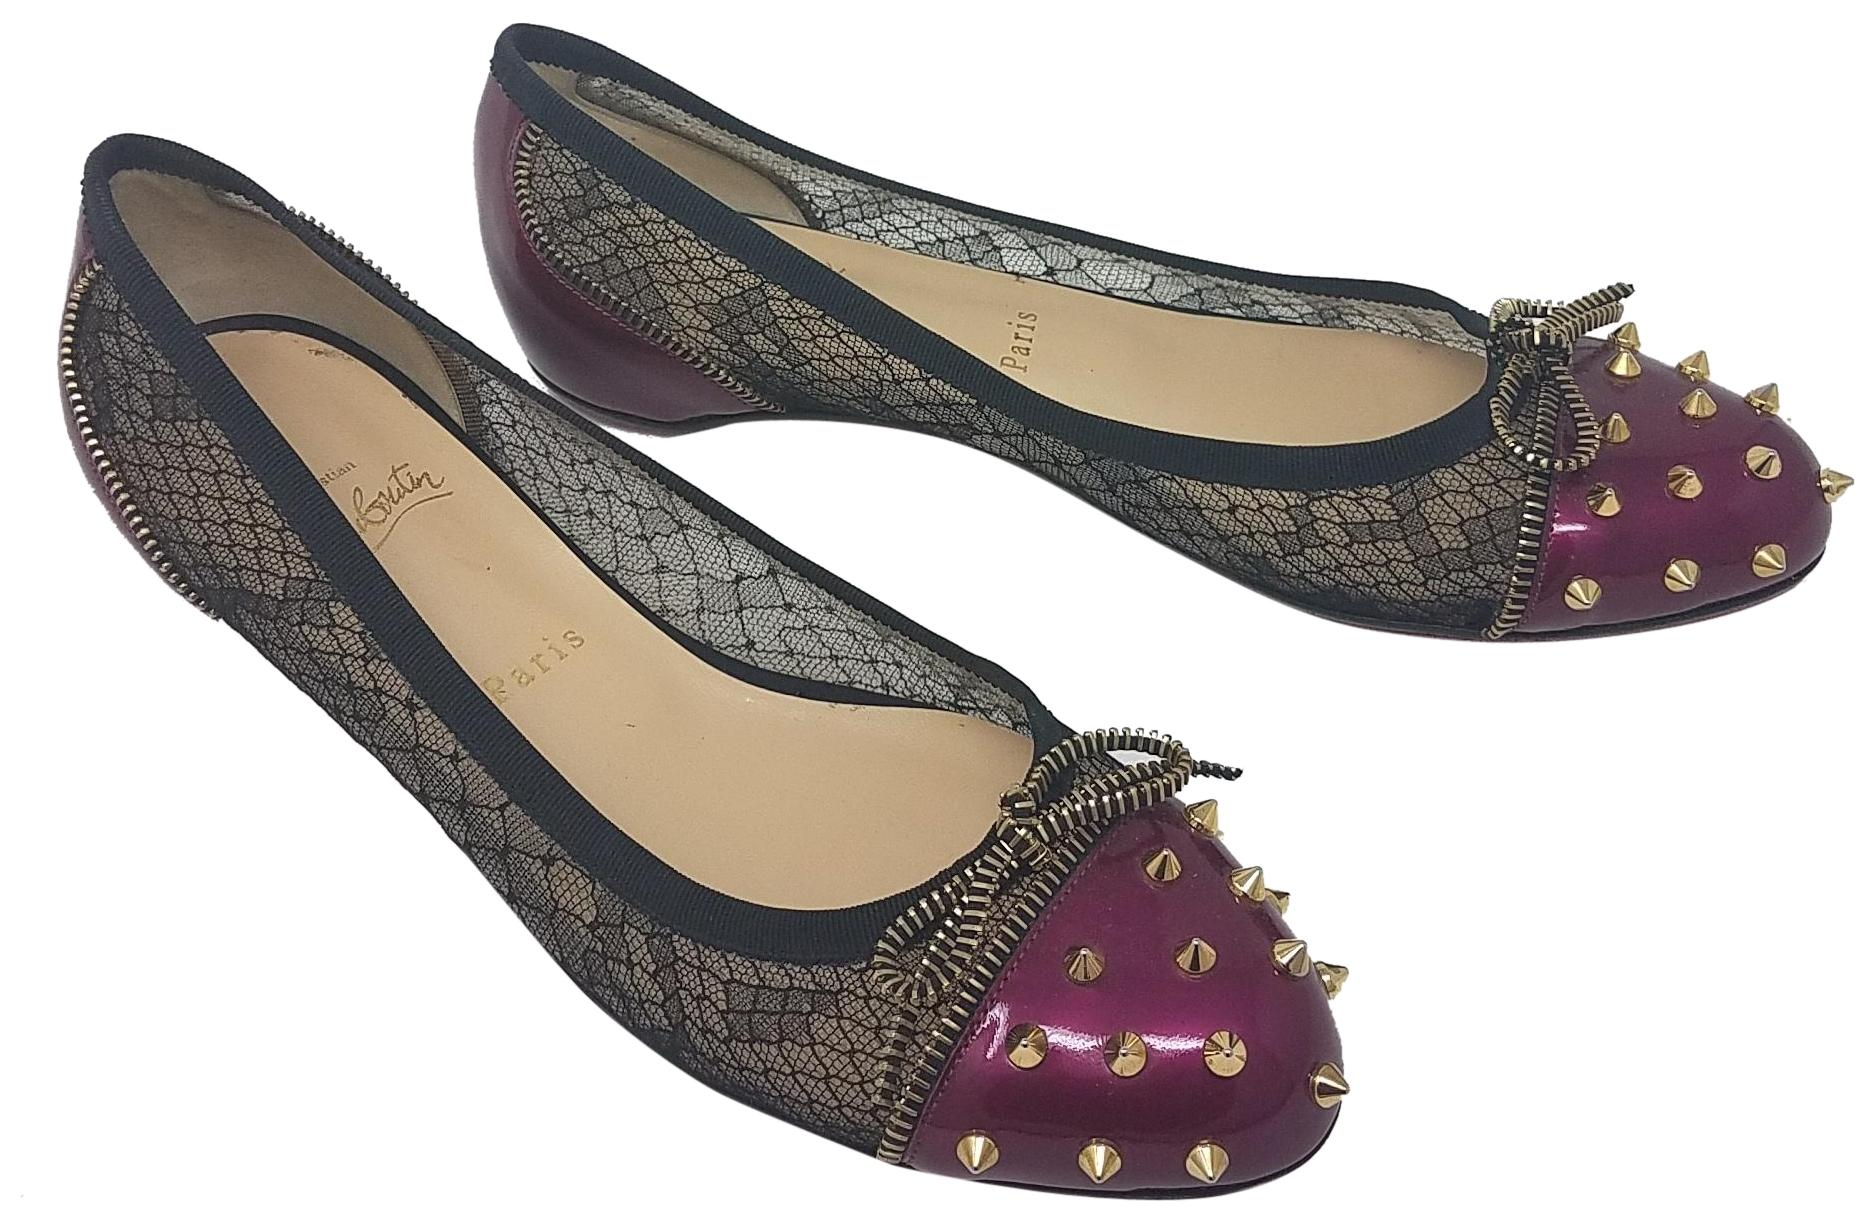 Christian Louboutin Mesh Round-Toe Flats clearance online outlet under $60 outlet get authentic cheap price m2qoACwkKR